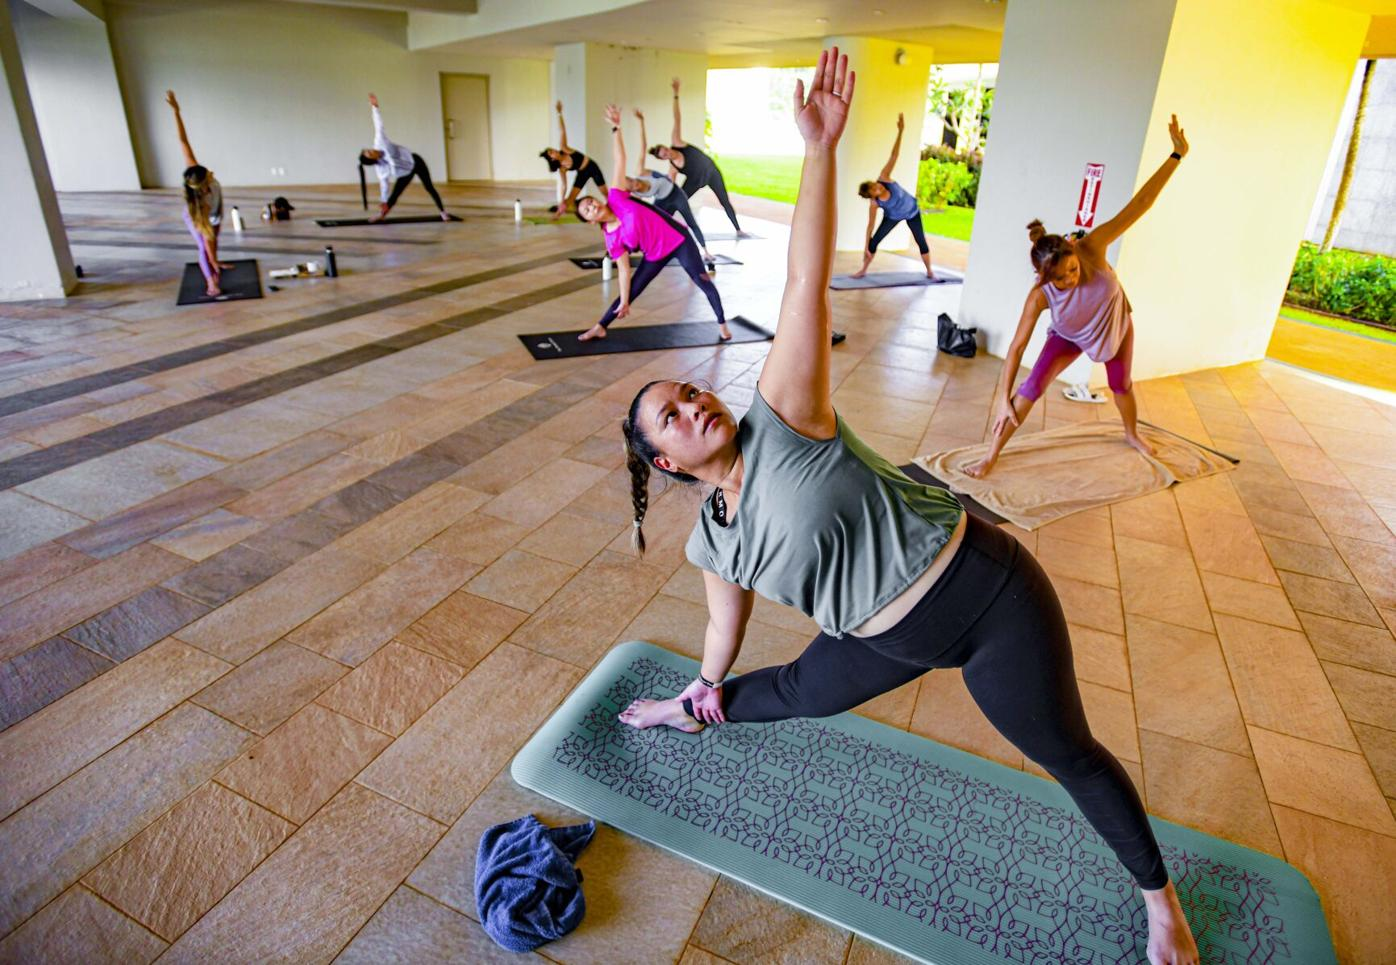 Yoga in Paradise: Ina Wellness Collective at The Tsubaki Tower